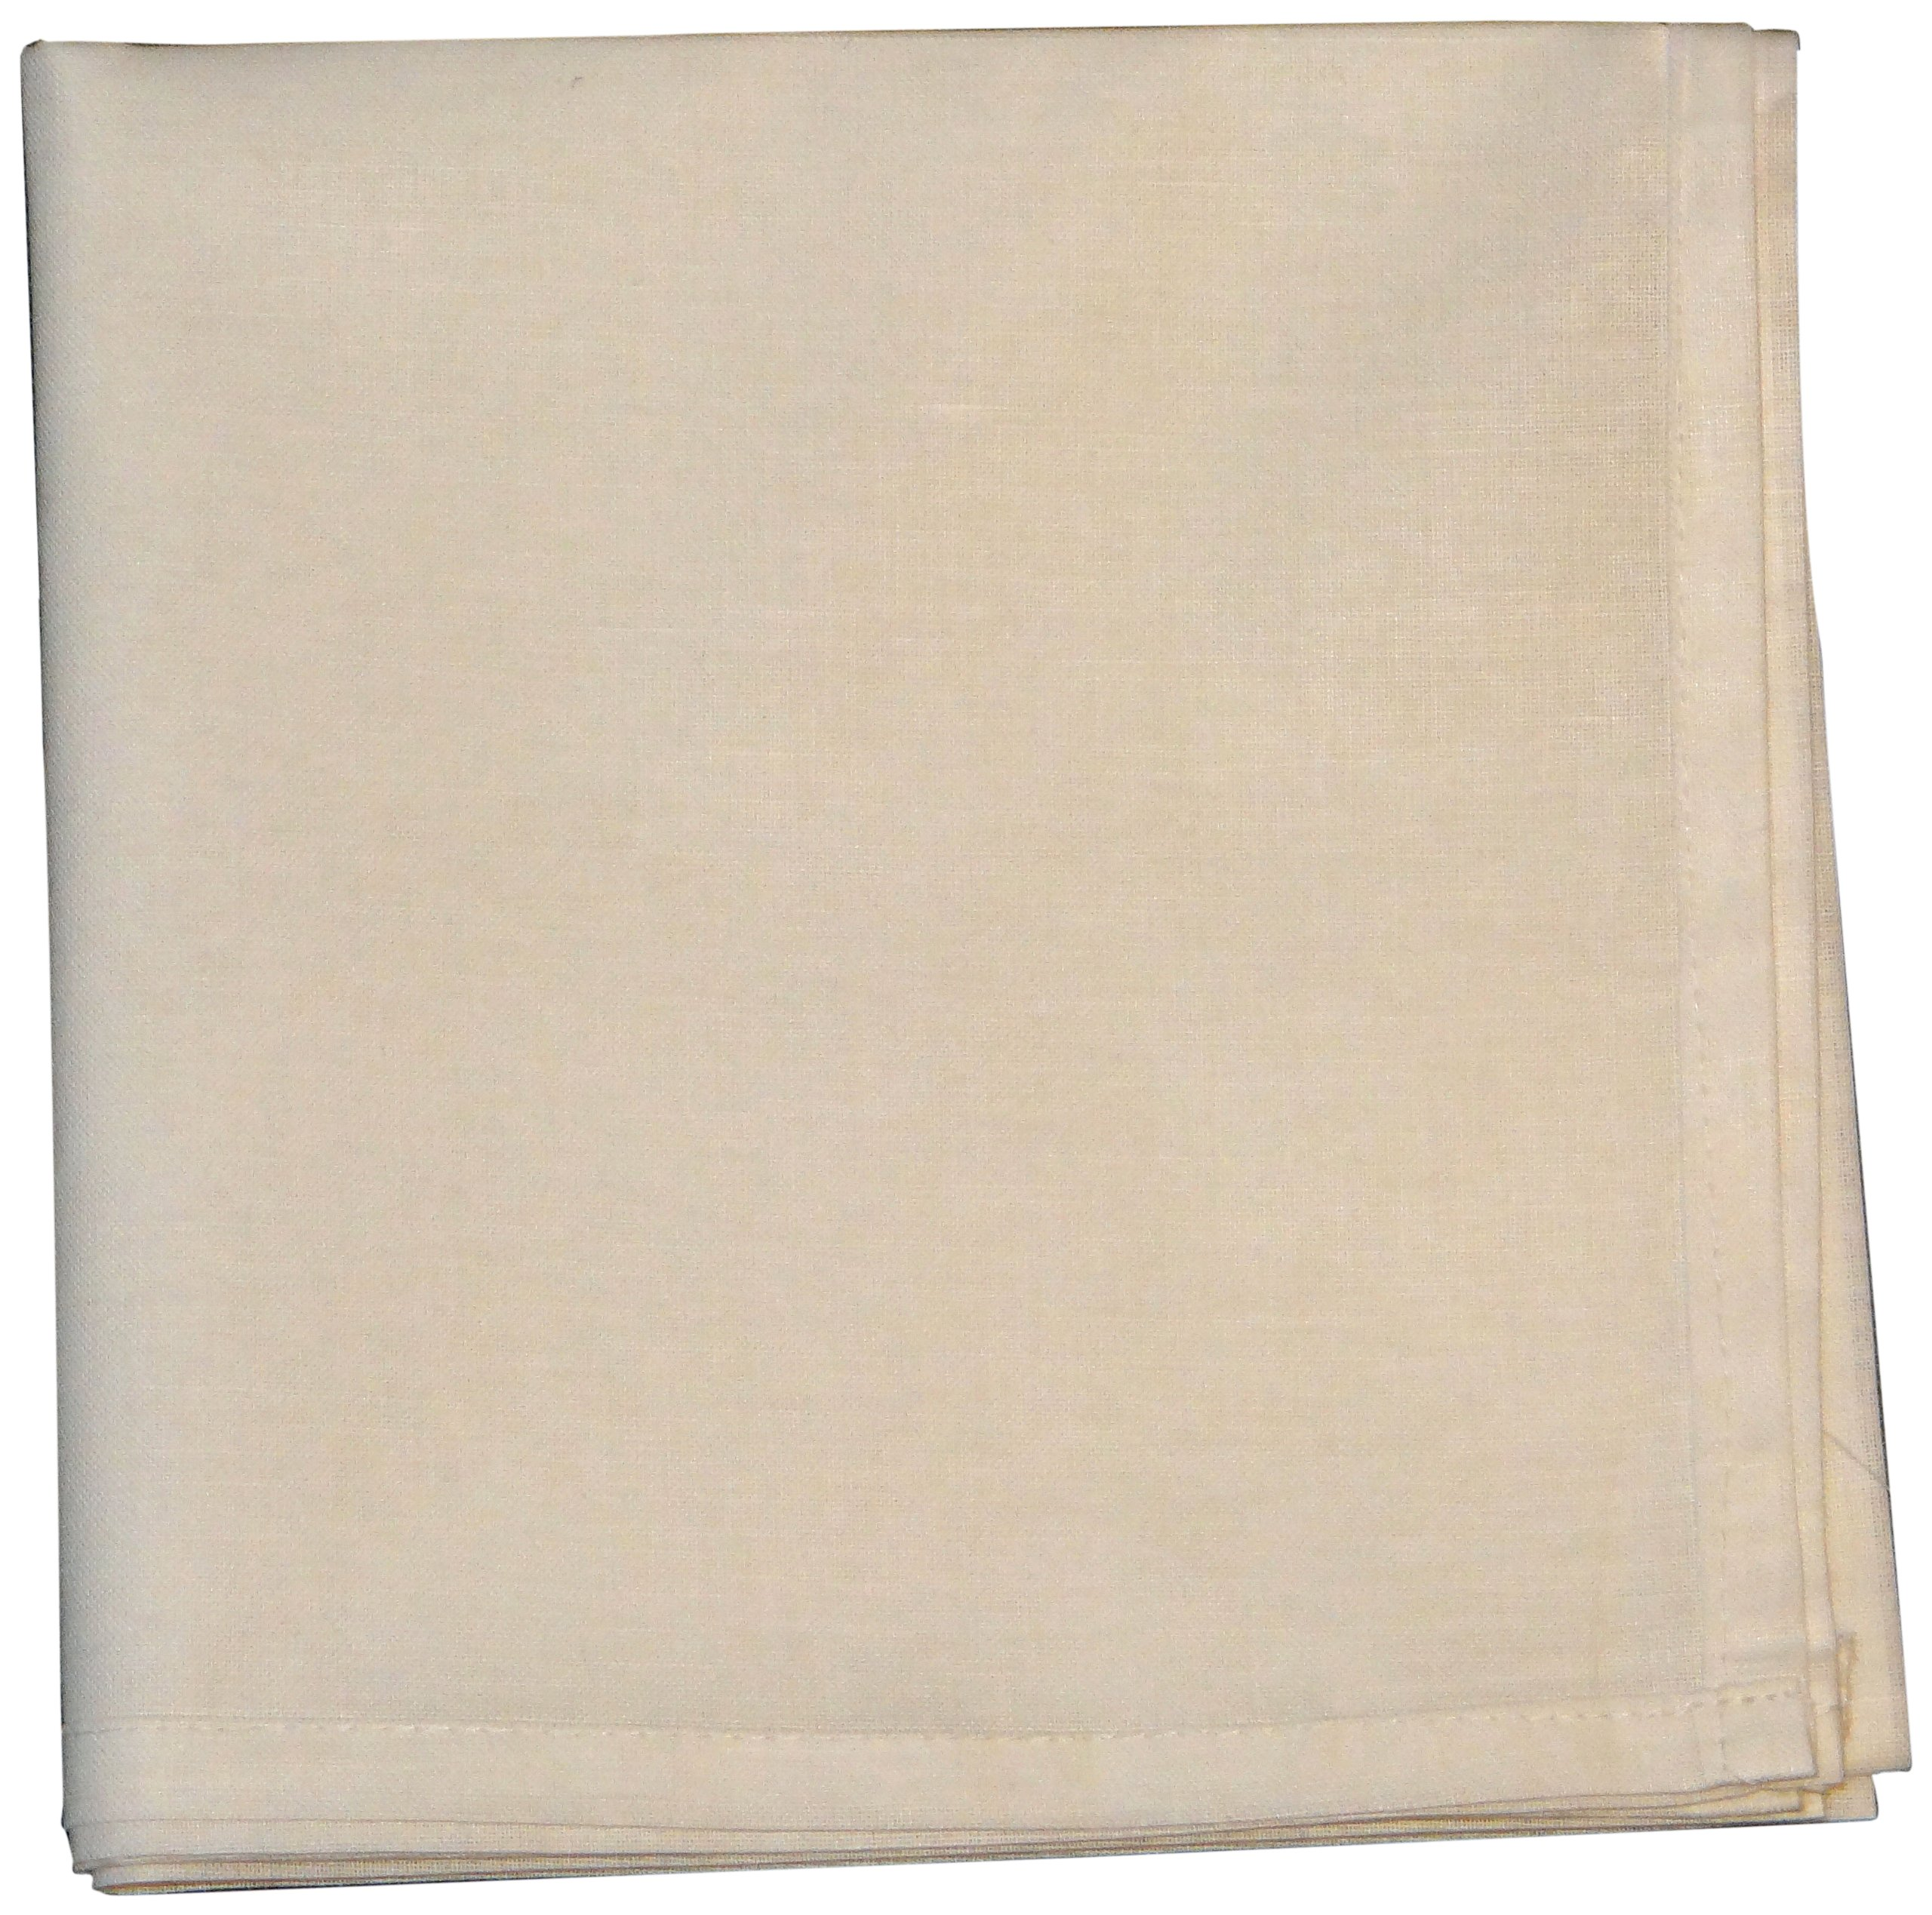 Phoenix Flour 12-Pack Sack Towel, 22 by 37-Inch, White